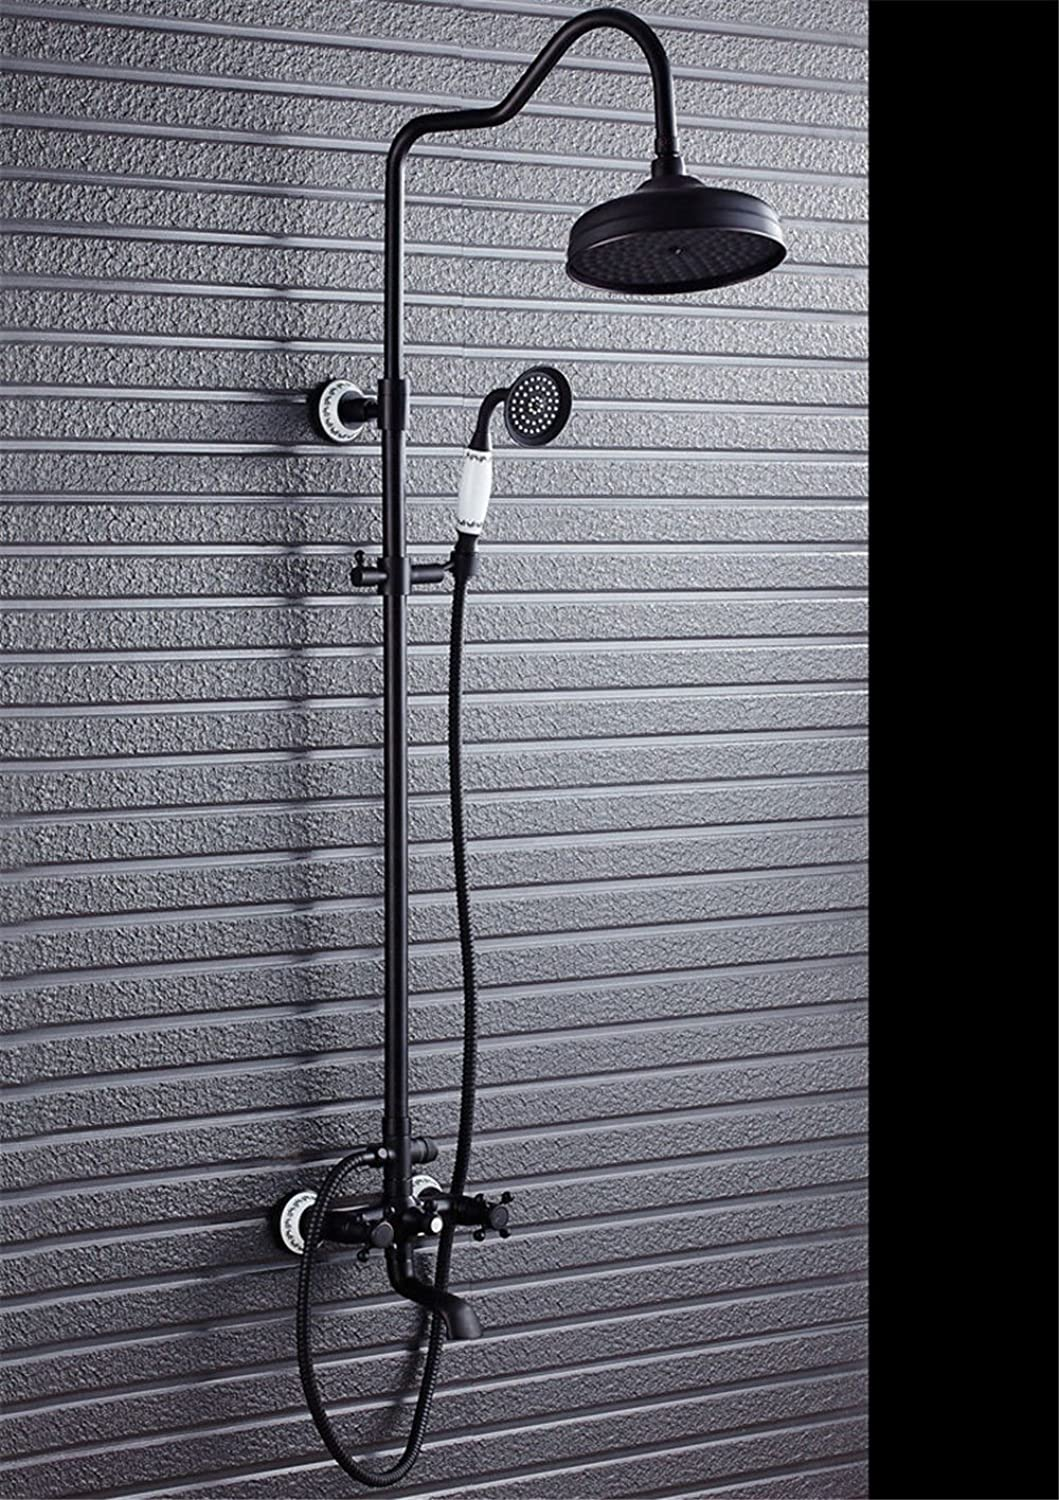 NewBorn Faucet Water Taps Hot And Cold Water Lift The Rain Sprinkler Black Shower Full Copper Showers Showers Shower Kit Black Retro Antique Shower Kit Shower Water Tap